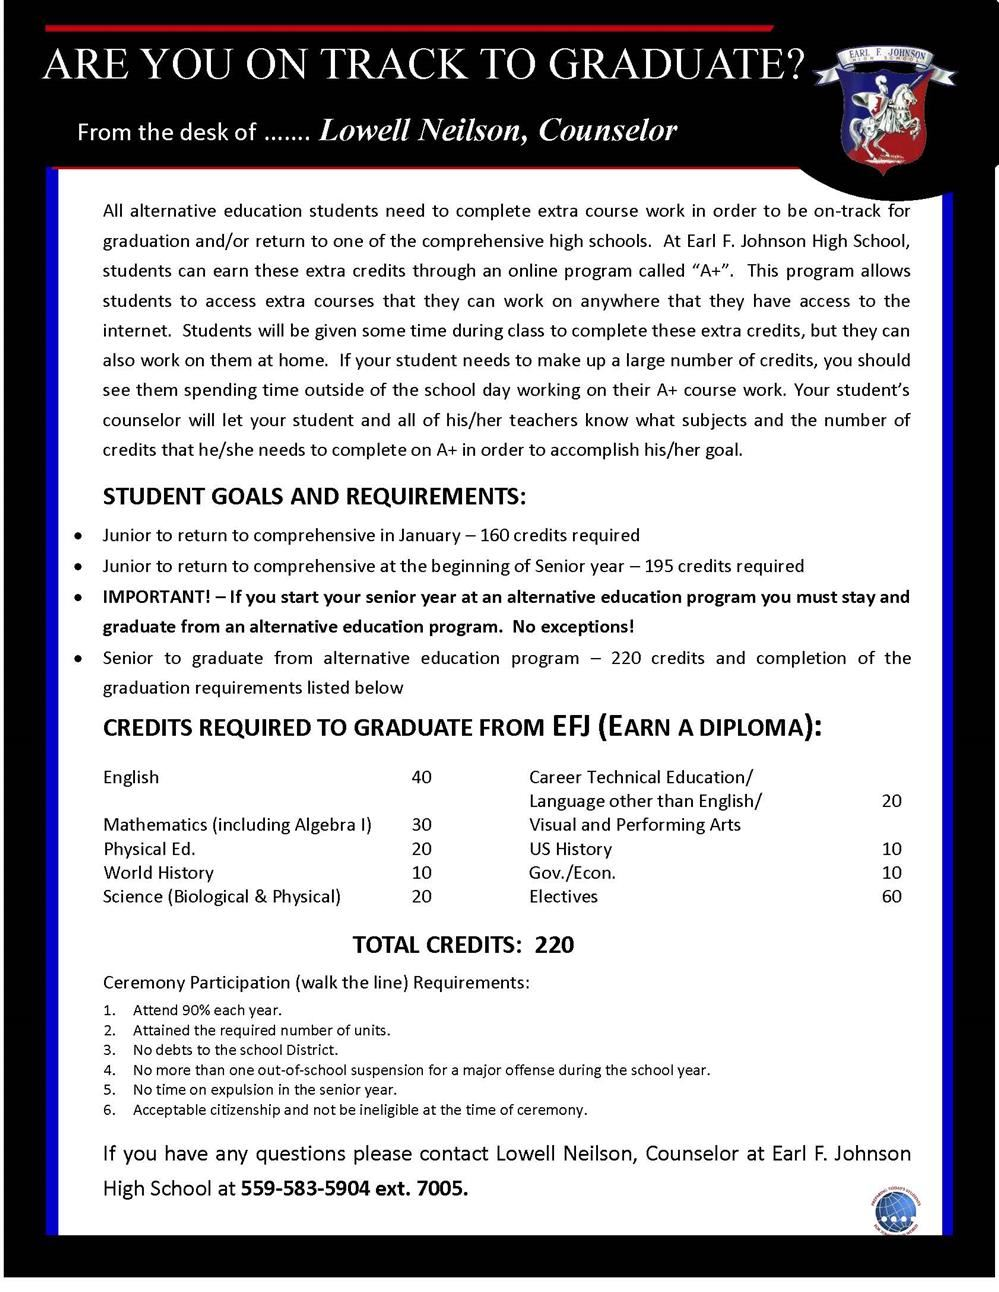 Academic Counselor Flyer